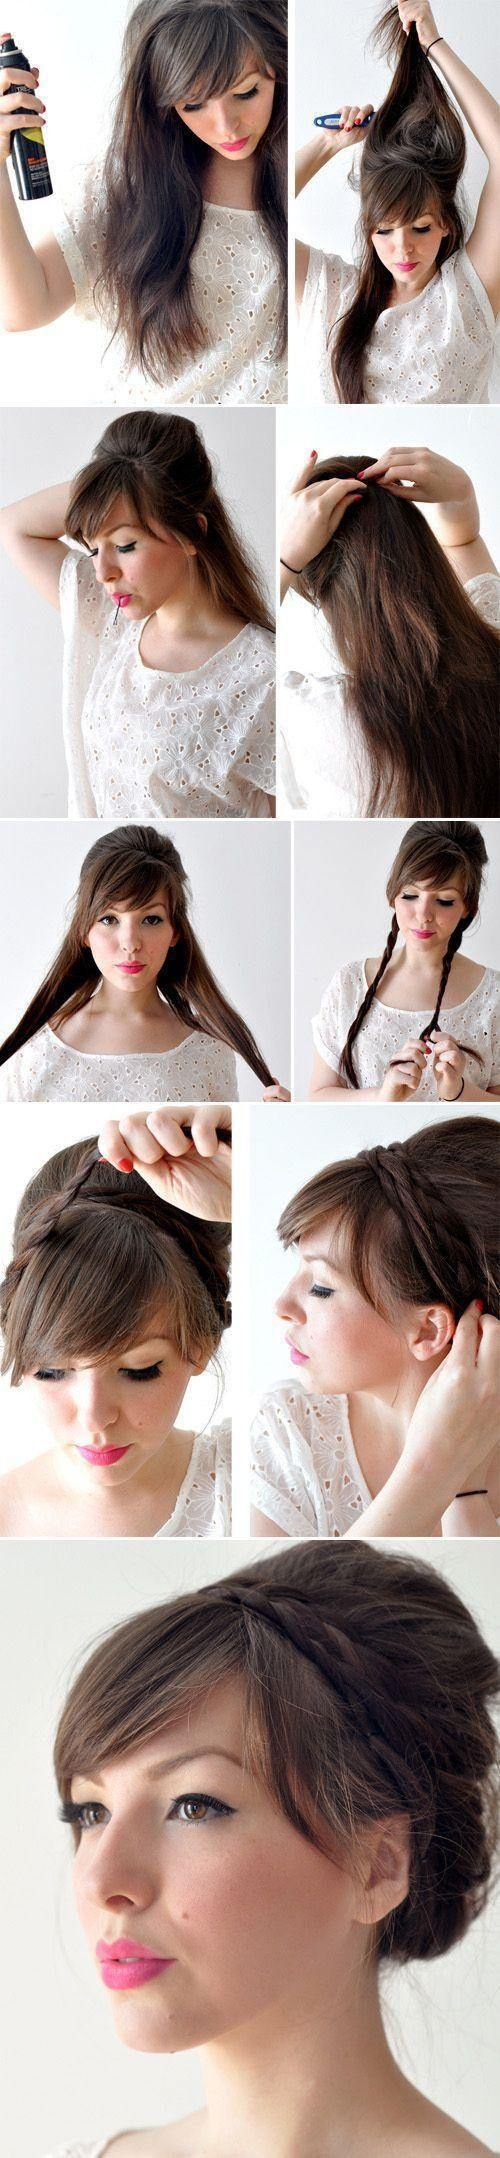 I%u2019m thinking this will be the look I%u2019ll use on my lazy days. Gotta love easy hair ideas that are fast and simple. :)